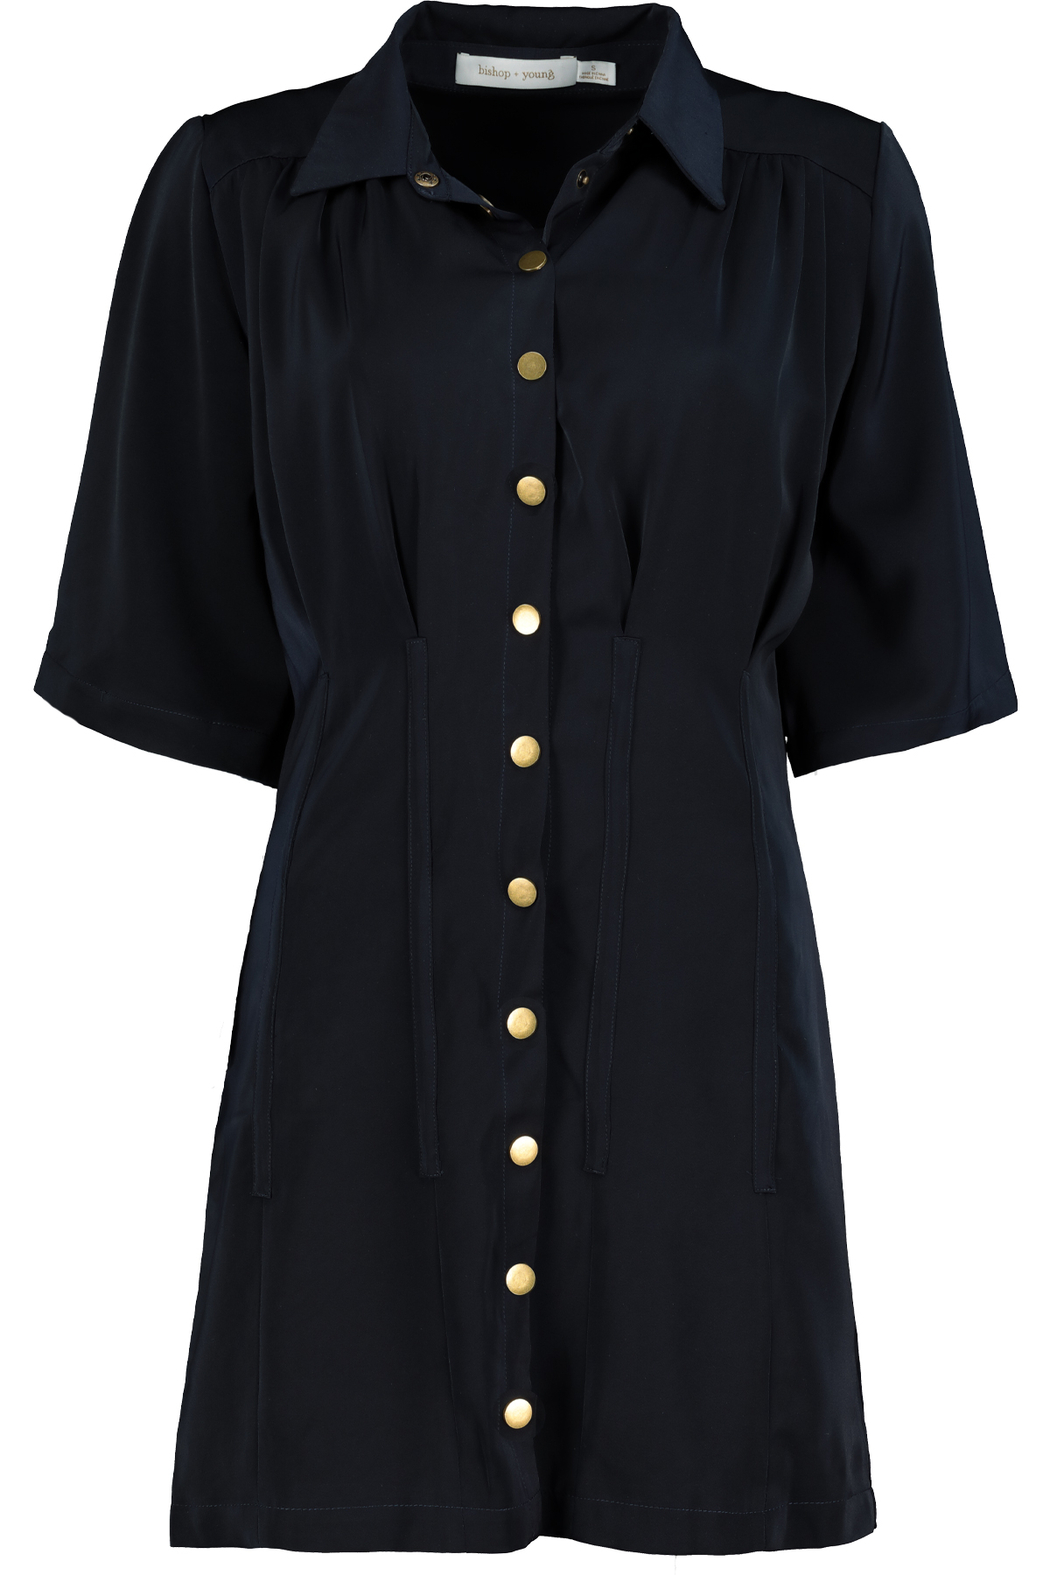 Bishop + Young Beautility Shirt Dress - Front Full Image